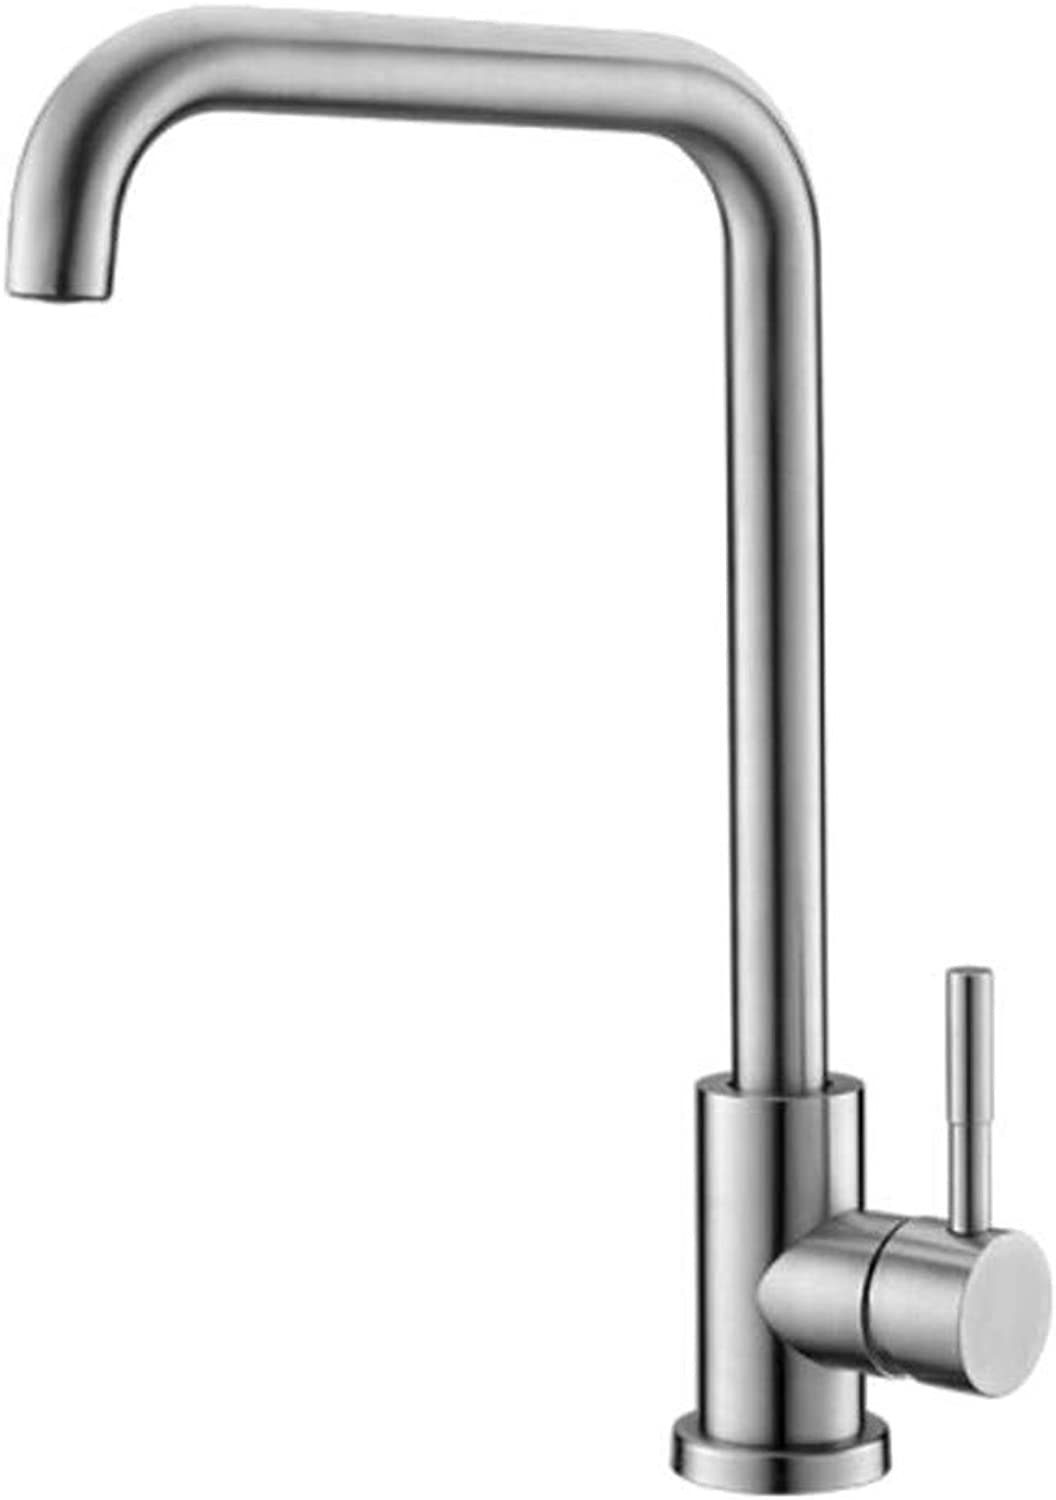 Faucet Waste Mono Spoutstainless Steel Kitchen Faucet Sink Dishwasher Can redate Hot and Cold Faucet